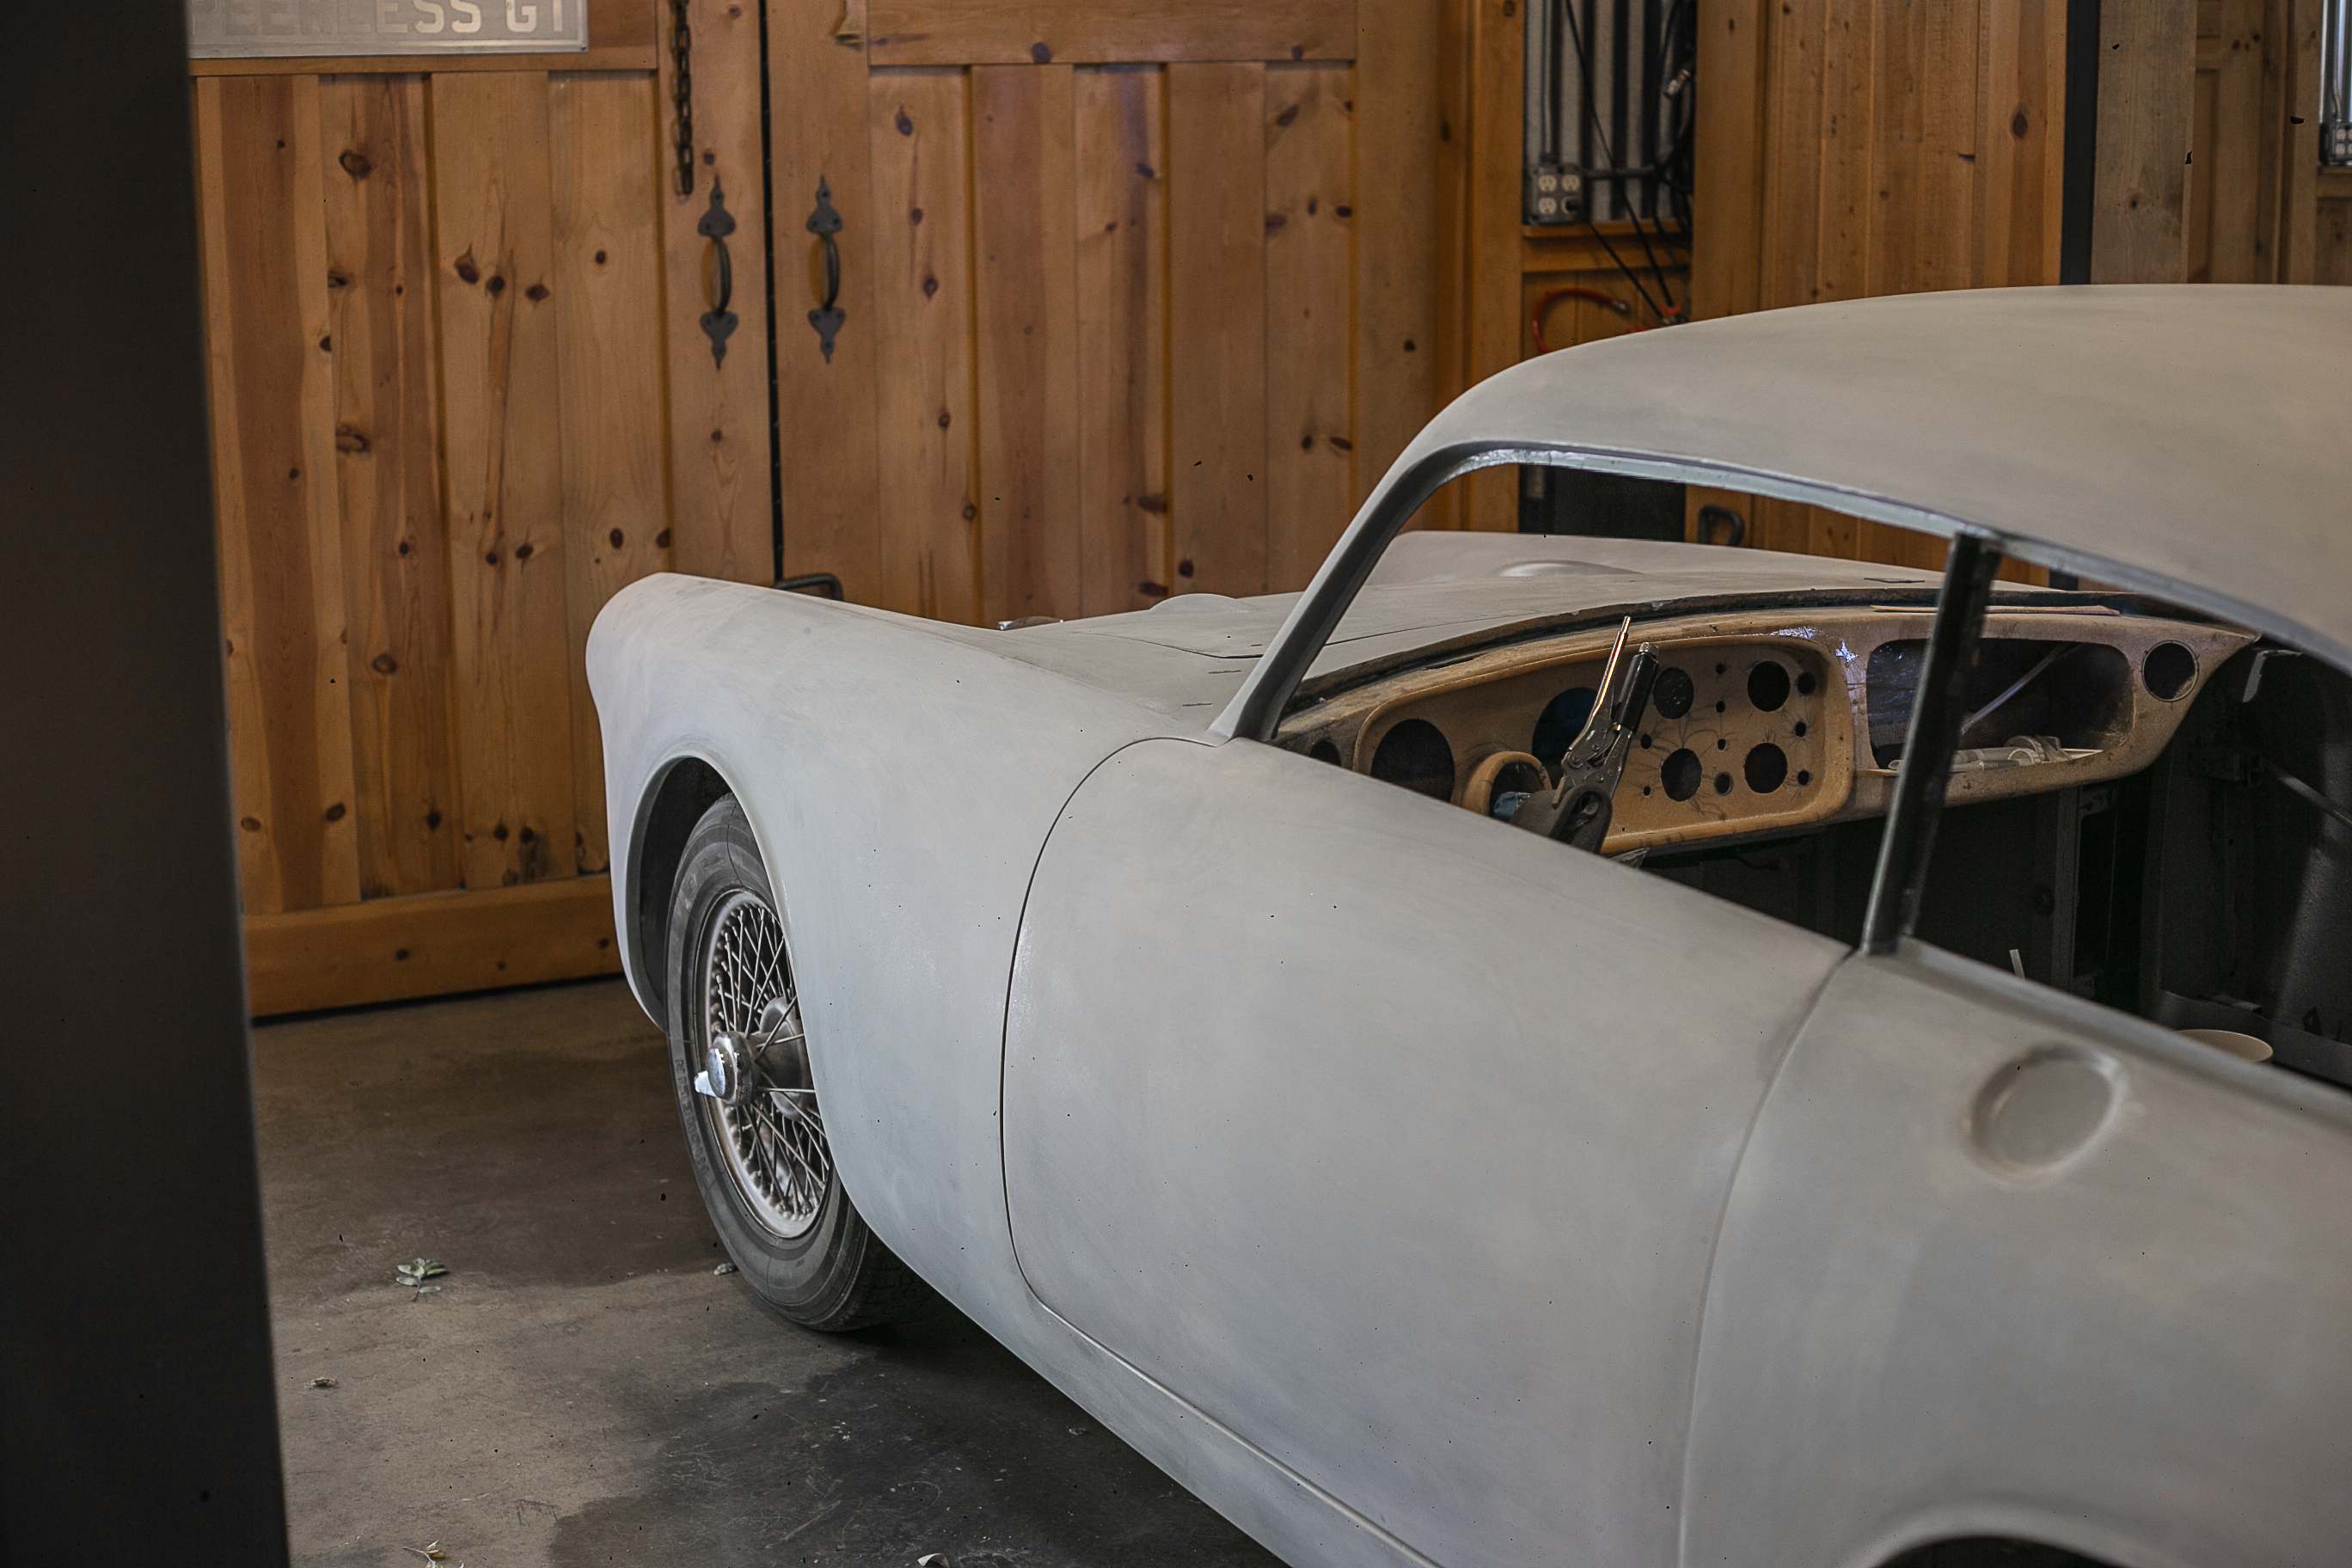 A 1959 Peerless GT awaits paint in the Caccavo garage in Thousand Oaks, California.